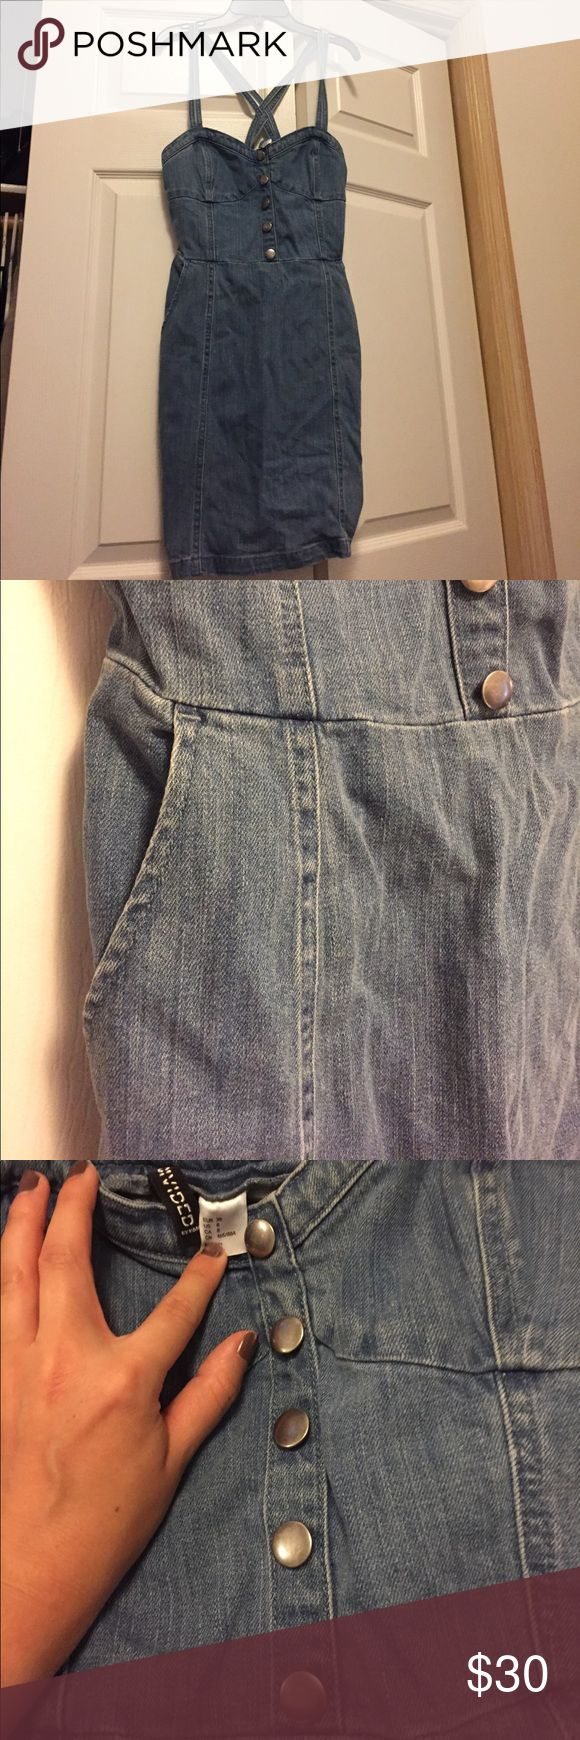 Denim mini dress Cute structured fit! By divided for h&m. Great condition. Zippered side. Straps cross in back & 2 pockets make this cute dress quite incredible! Smoke free home Divided Dresses